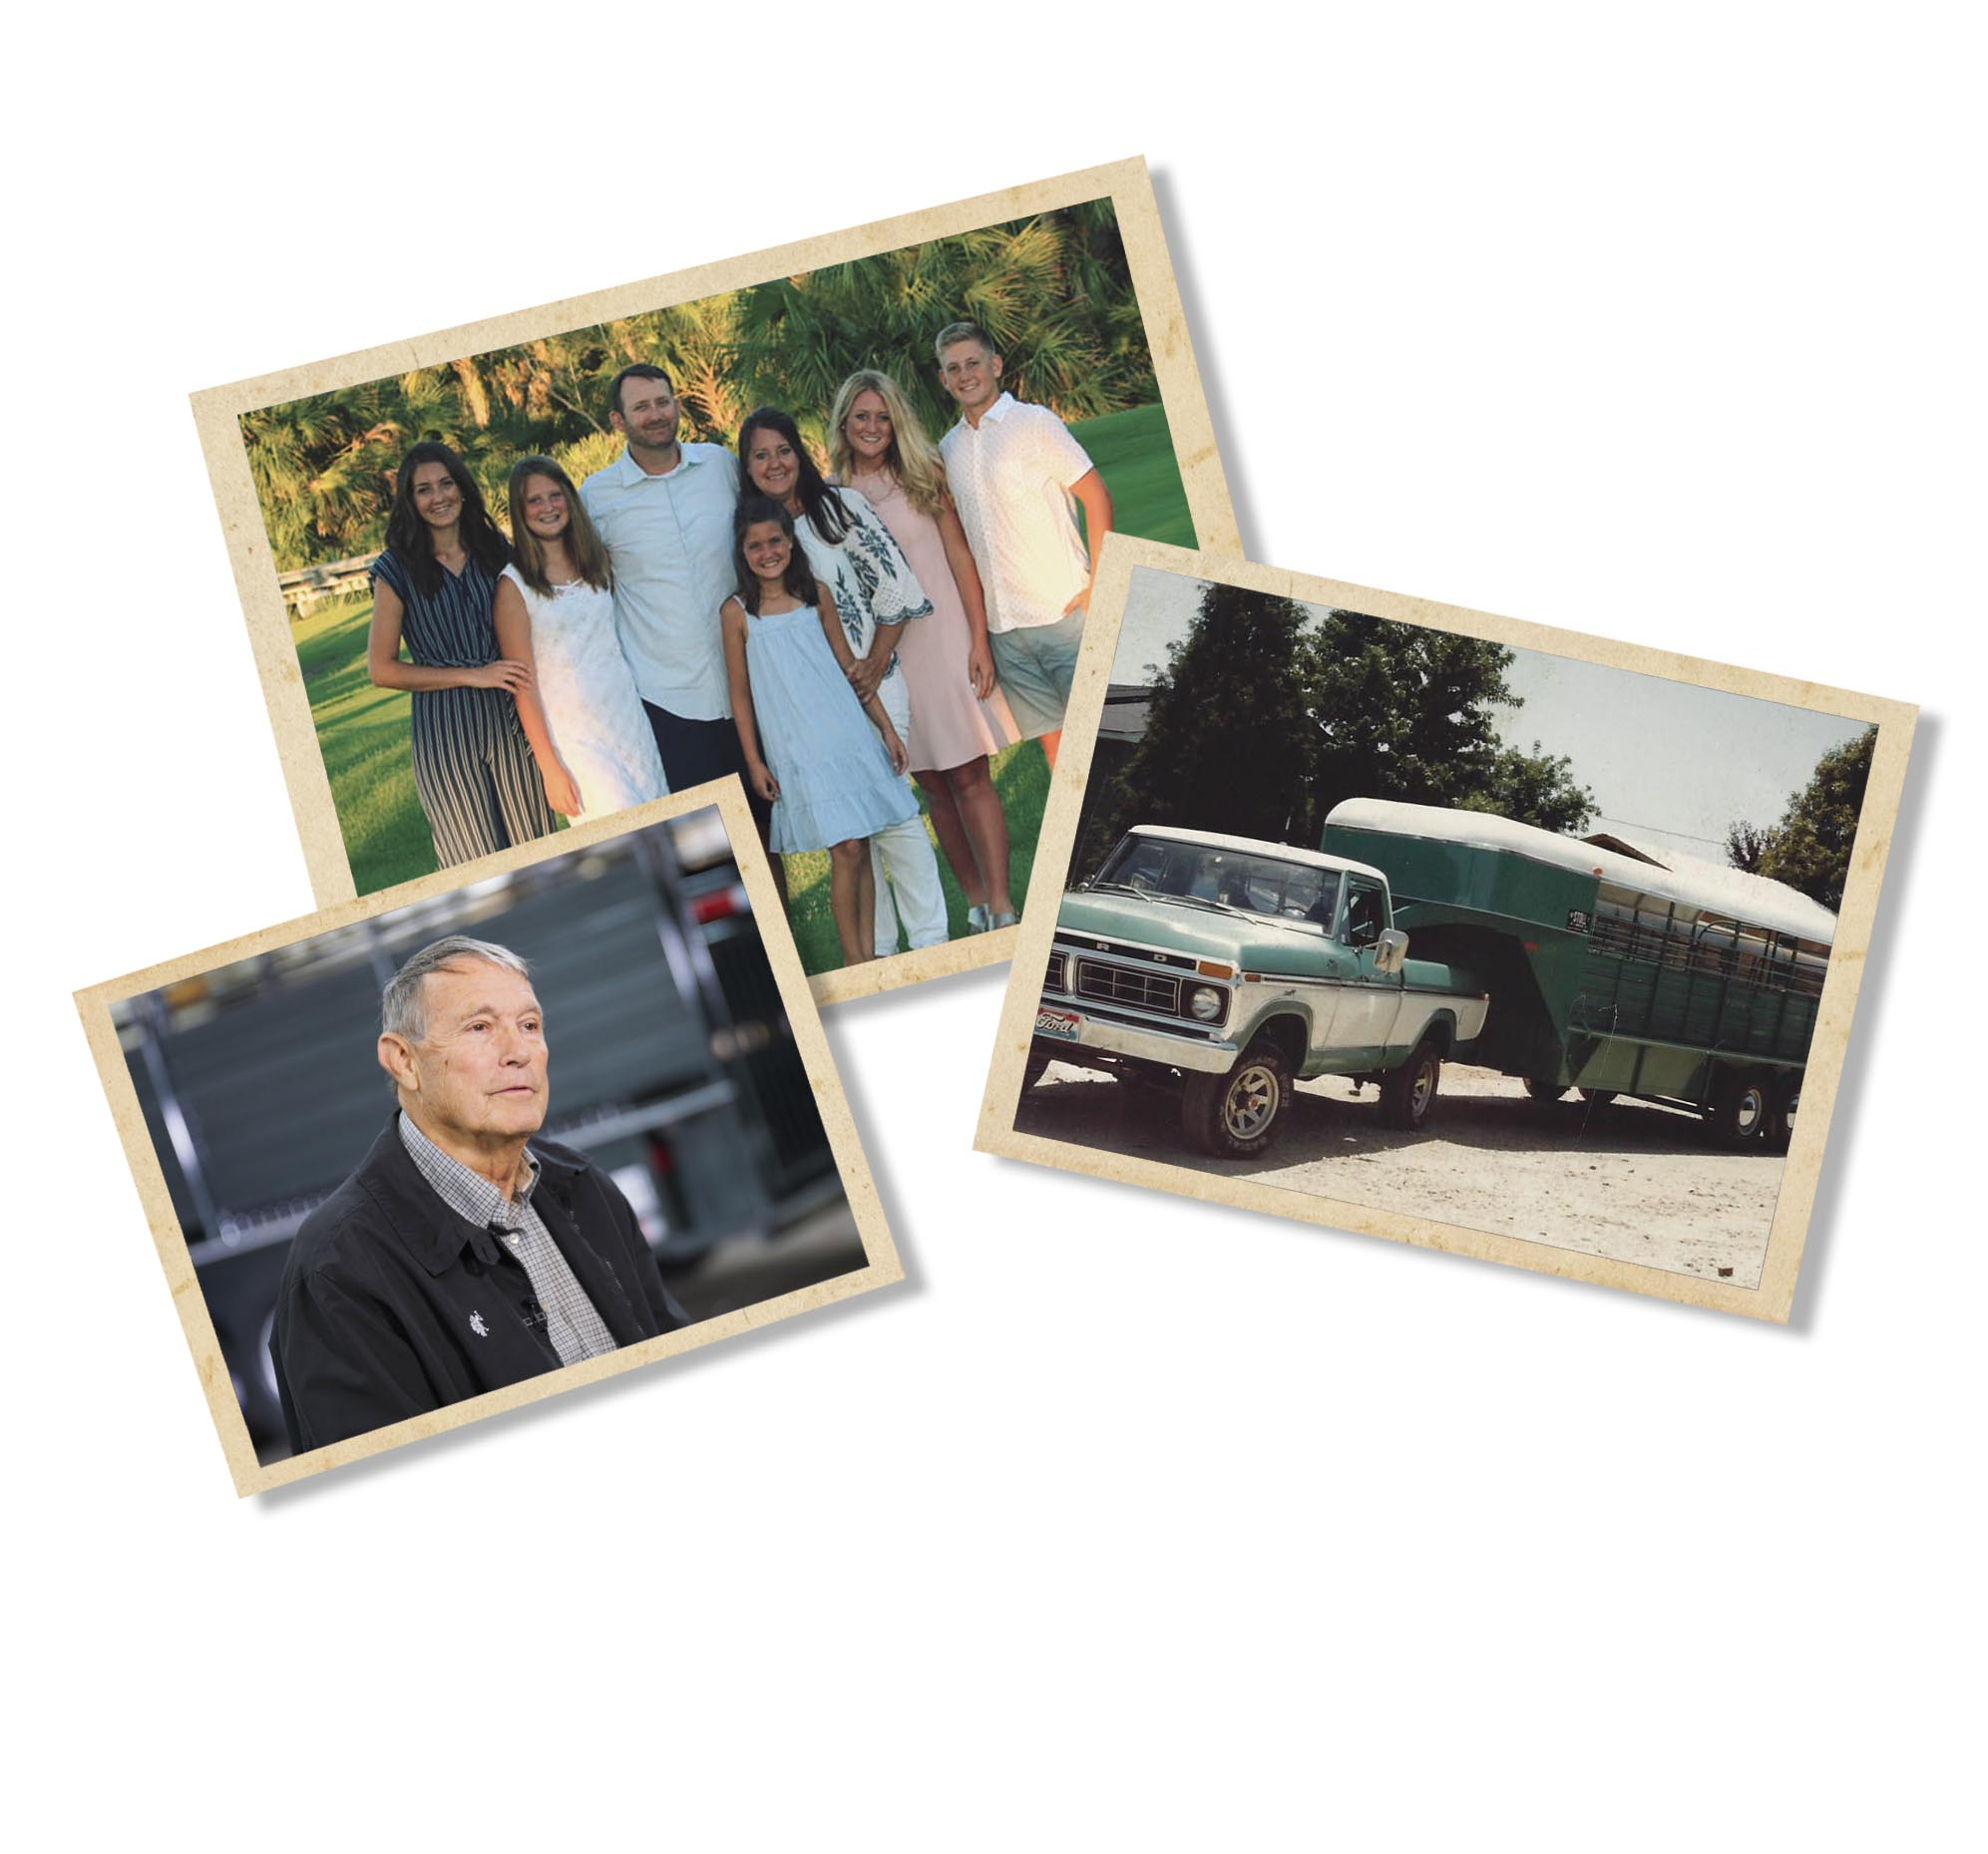 Stoll_About History Frames